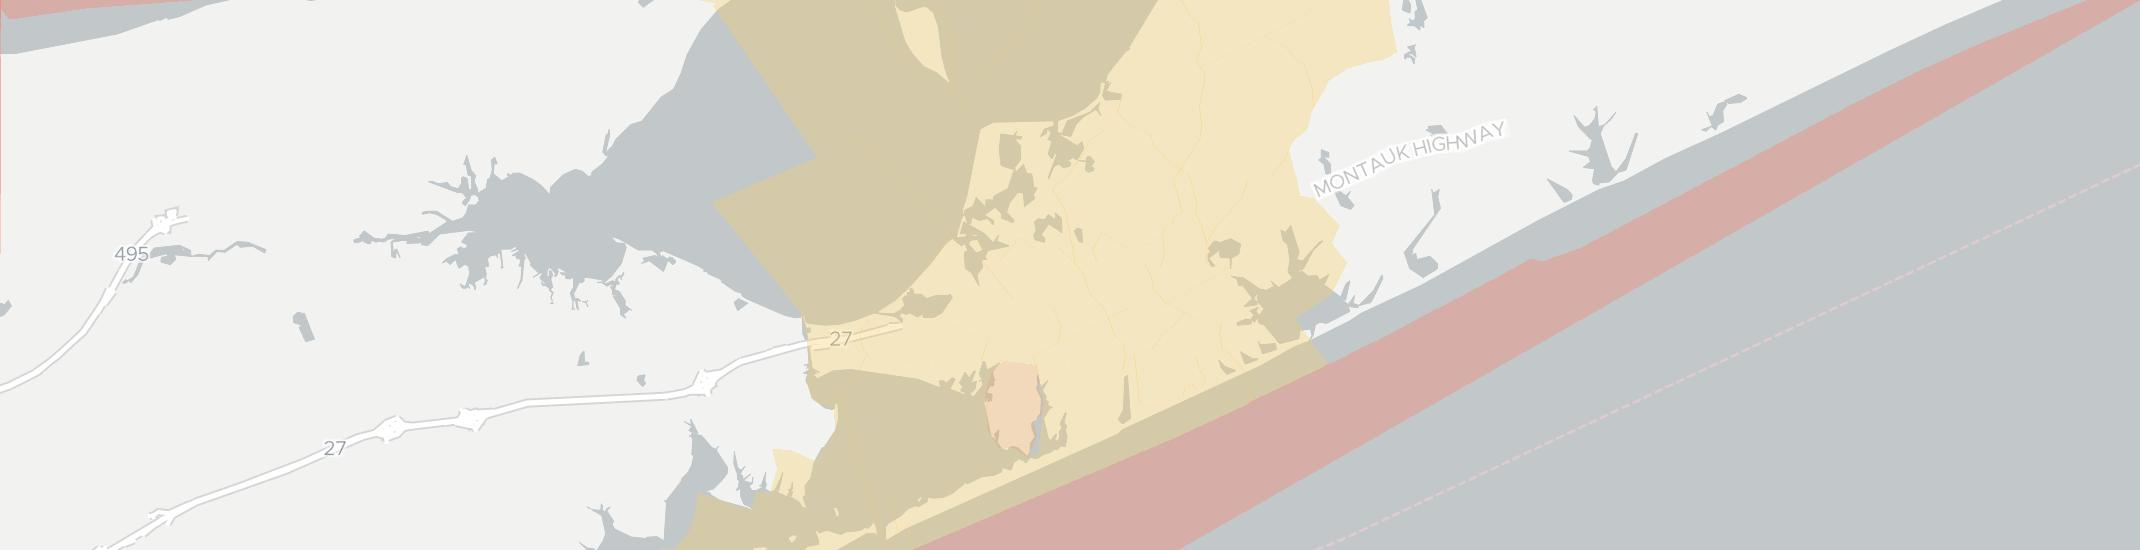 Southampton Internet Competition Map. Click for interactive map.